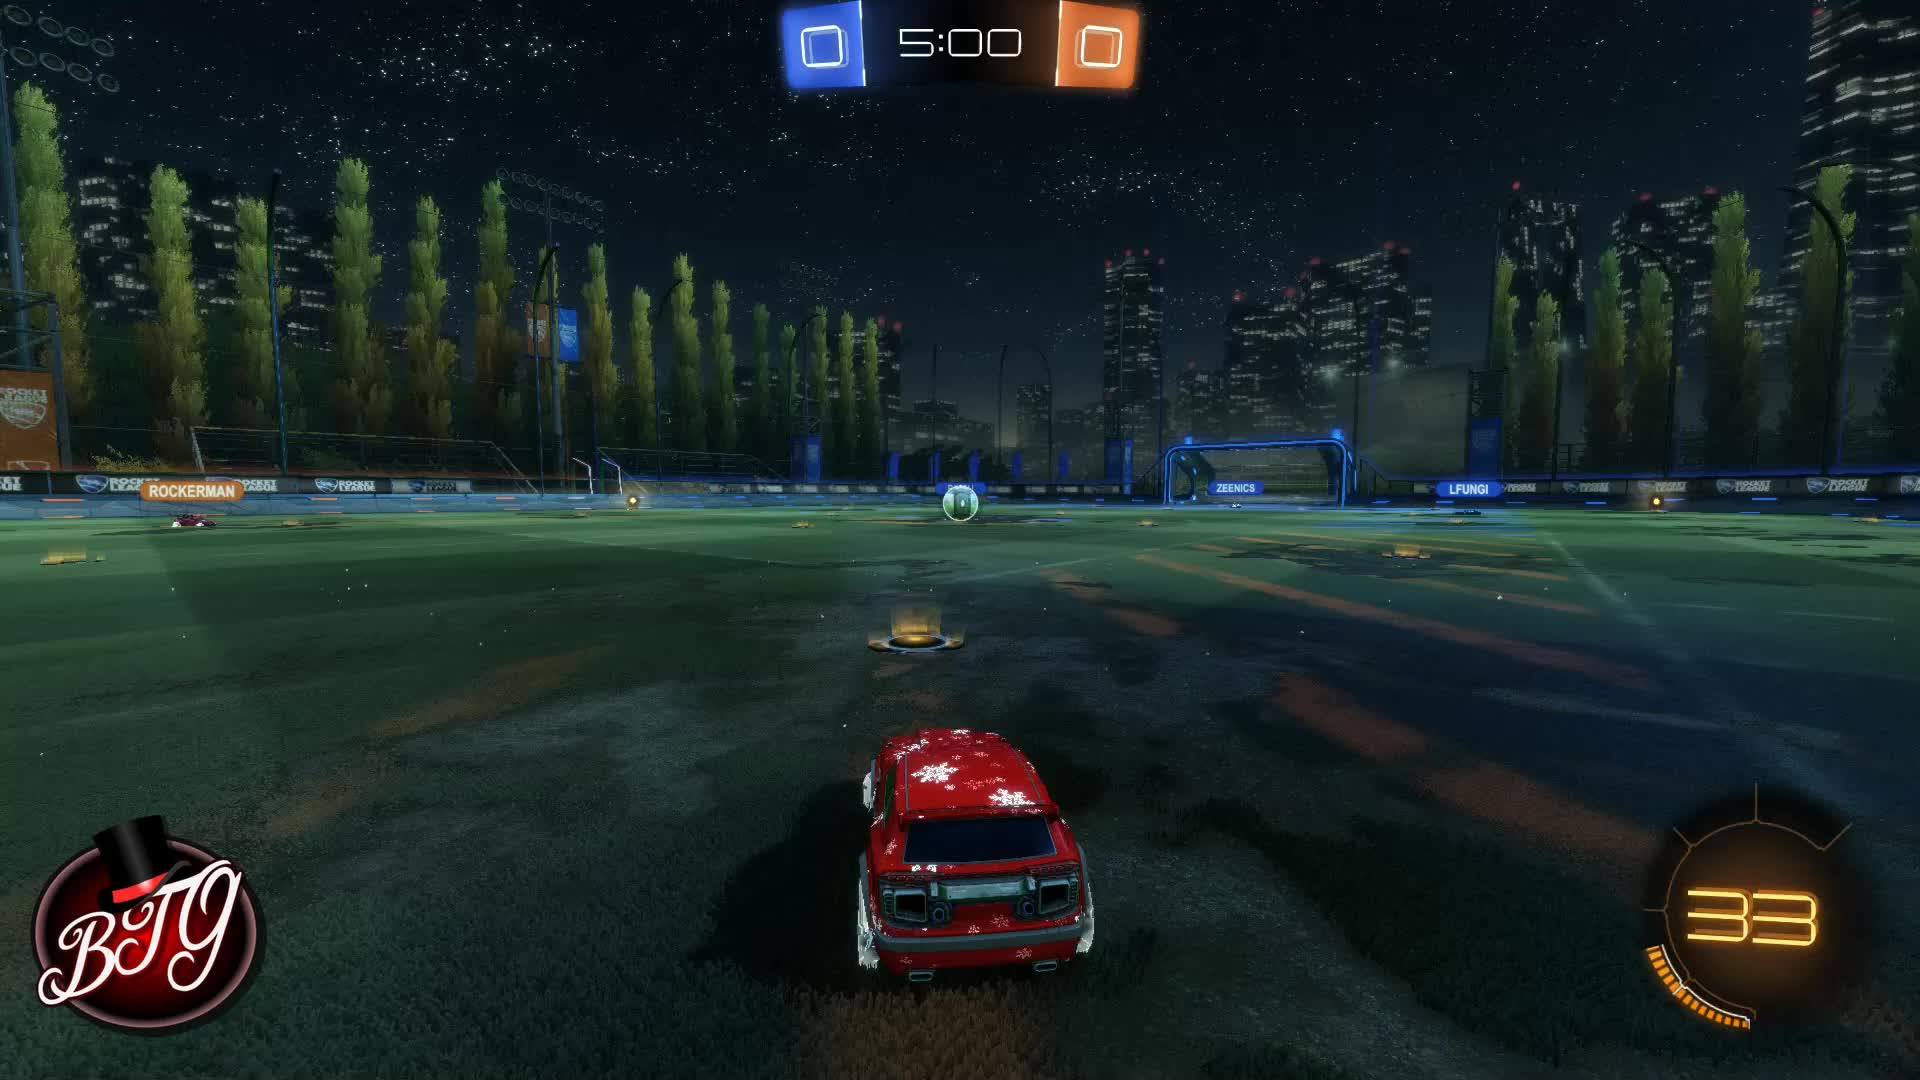 CarKneeJR, Gif Your Game, GifYourGame, Goal, Rocket League, RocketLeague, Goal 1: CarKneeJR GIFs